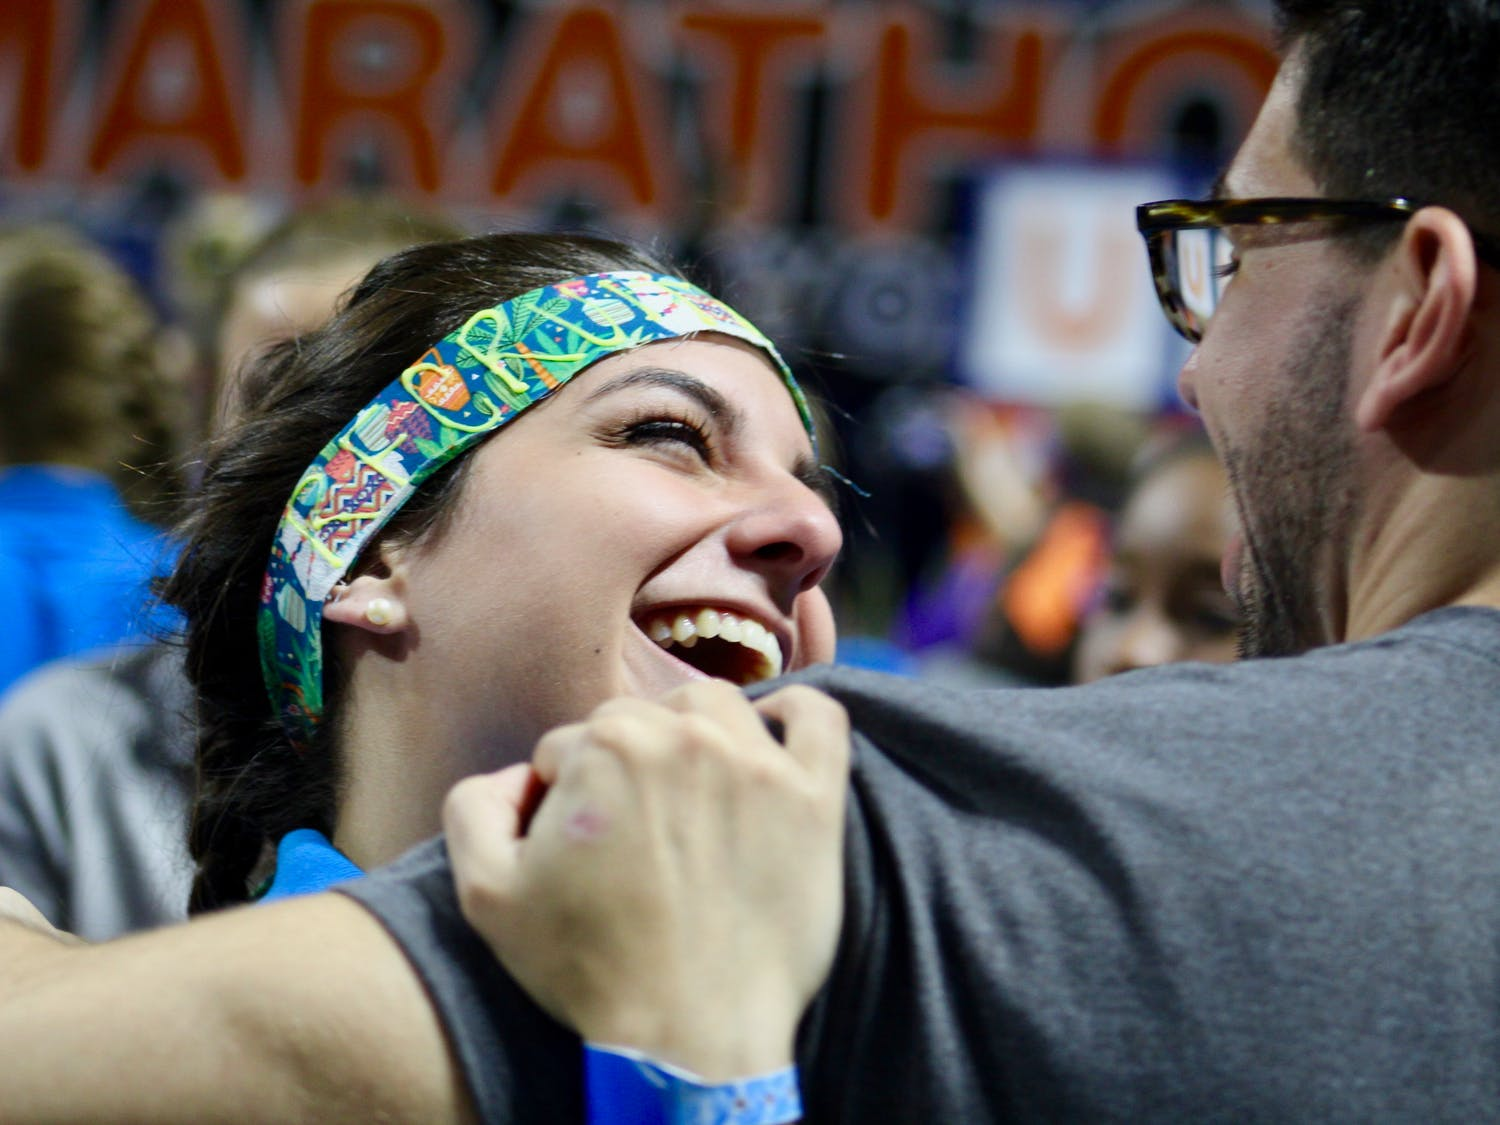 After 26.2 hours of dancing at the O'Connell Center, UF Dance Marathon organizers held up white signs to reveal the organization had raised $3,026,420.19 for the Children's Miracle Network. Last year, $2.7 million were raised, said Ashleigh Braun, a captain on the Dance Marathon public relations team.